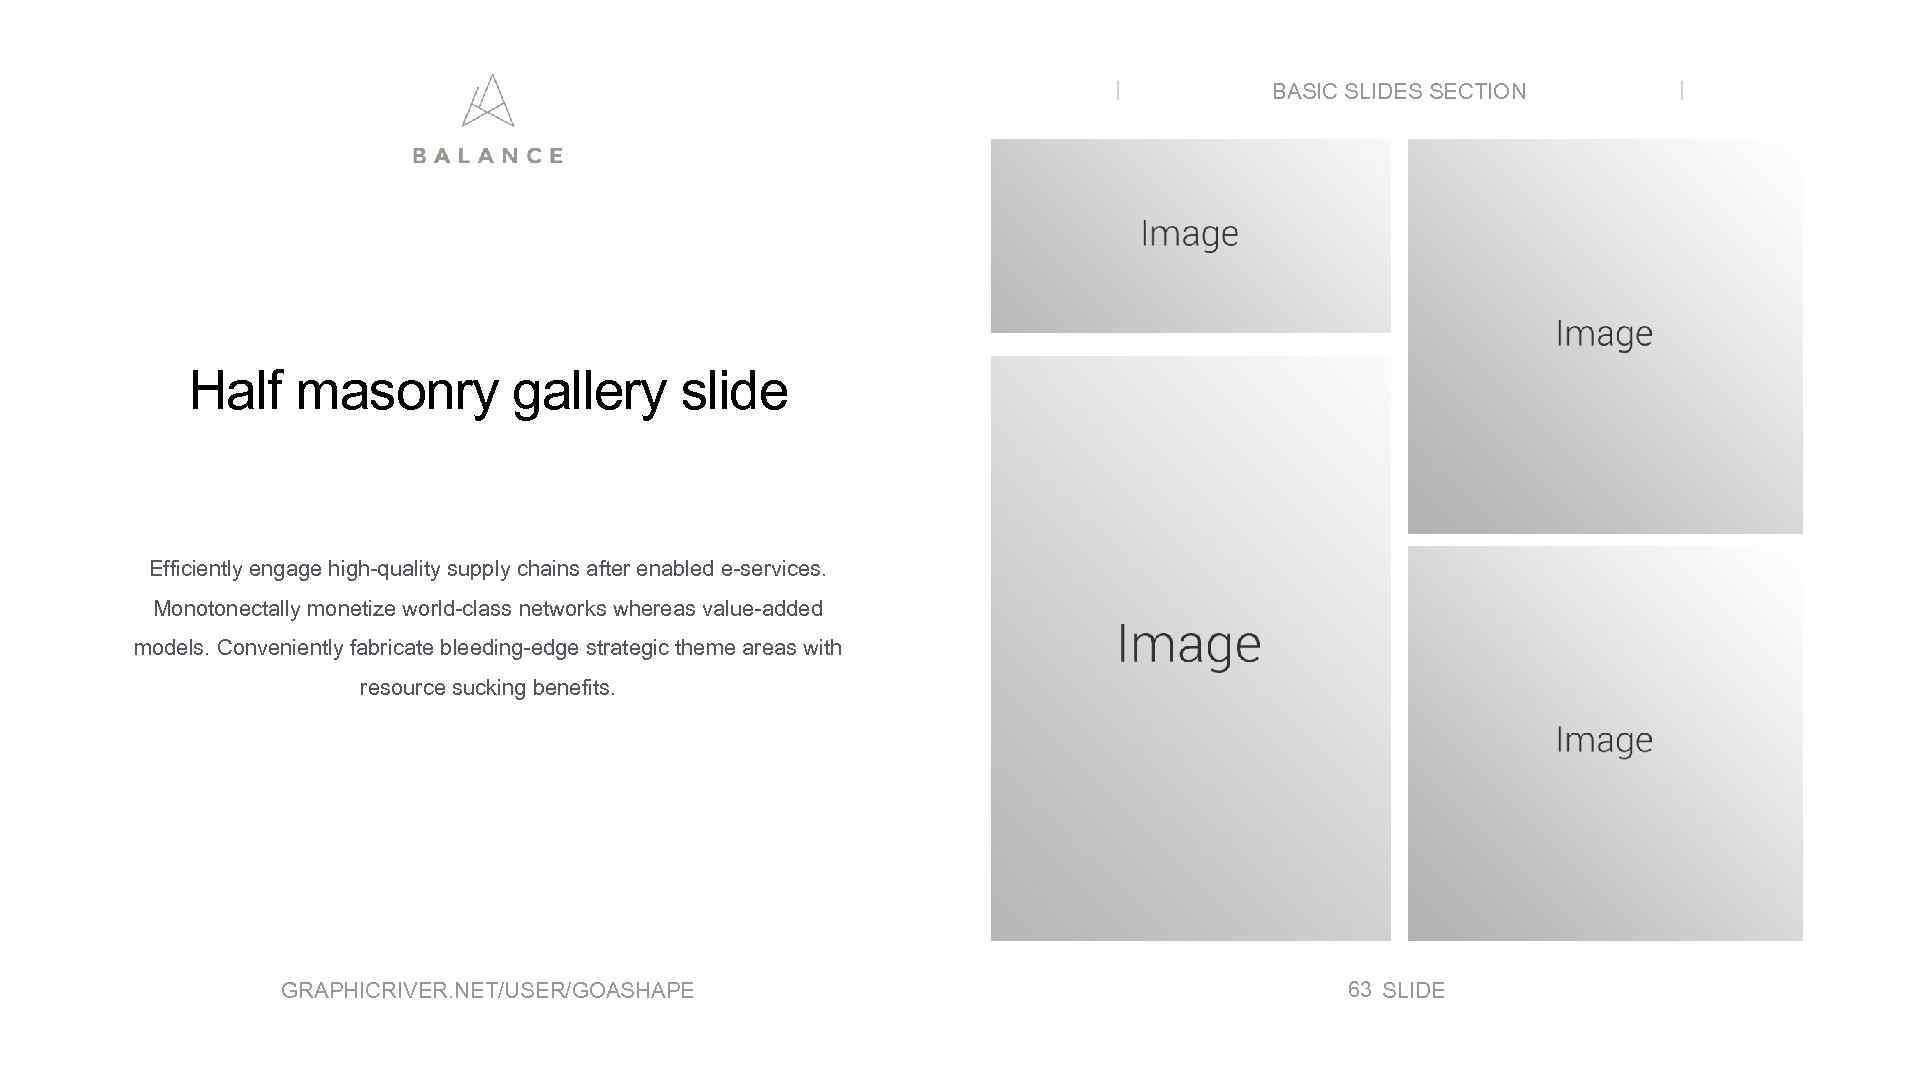 BASIC SLIDES SECTION Half masonry gallery slide Efficiently engage high-quality supply chains after enabled